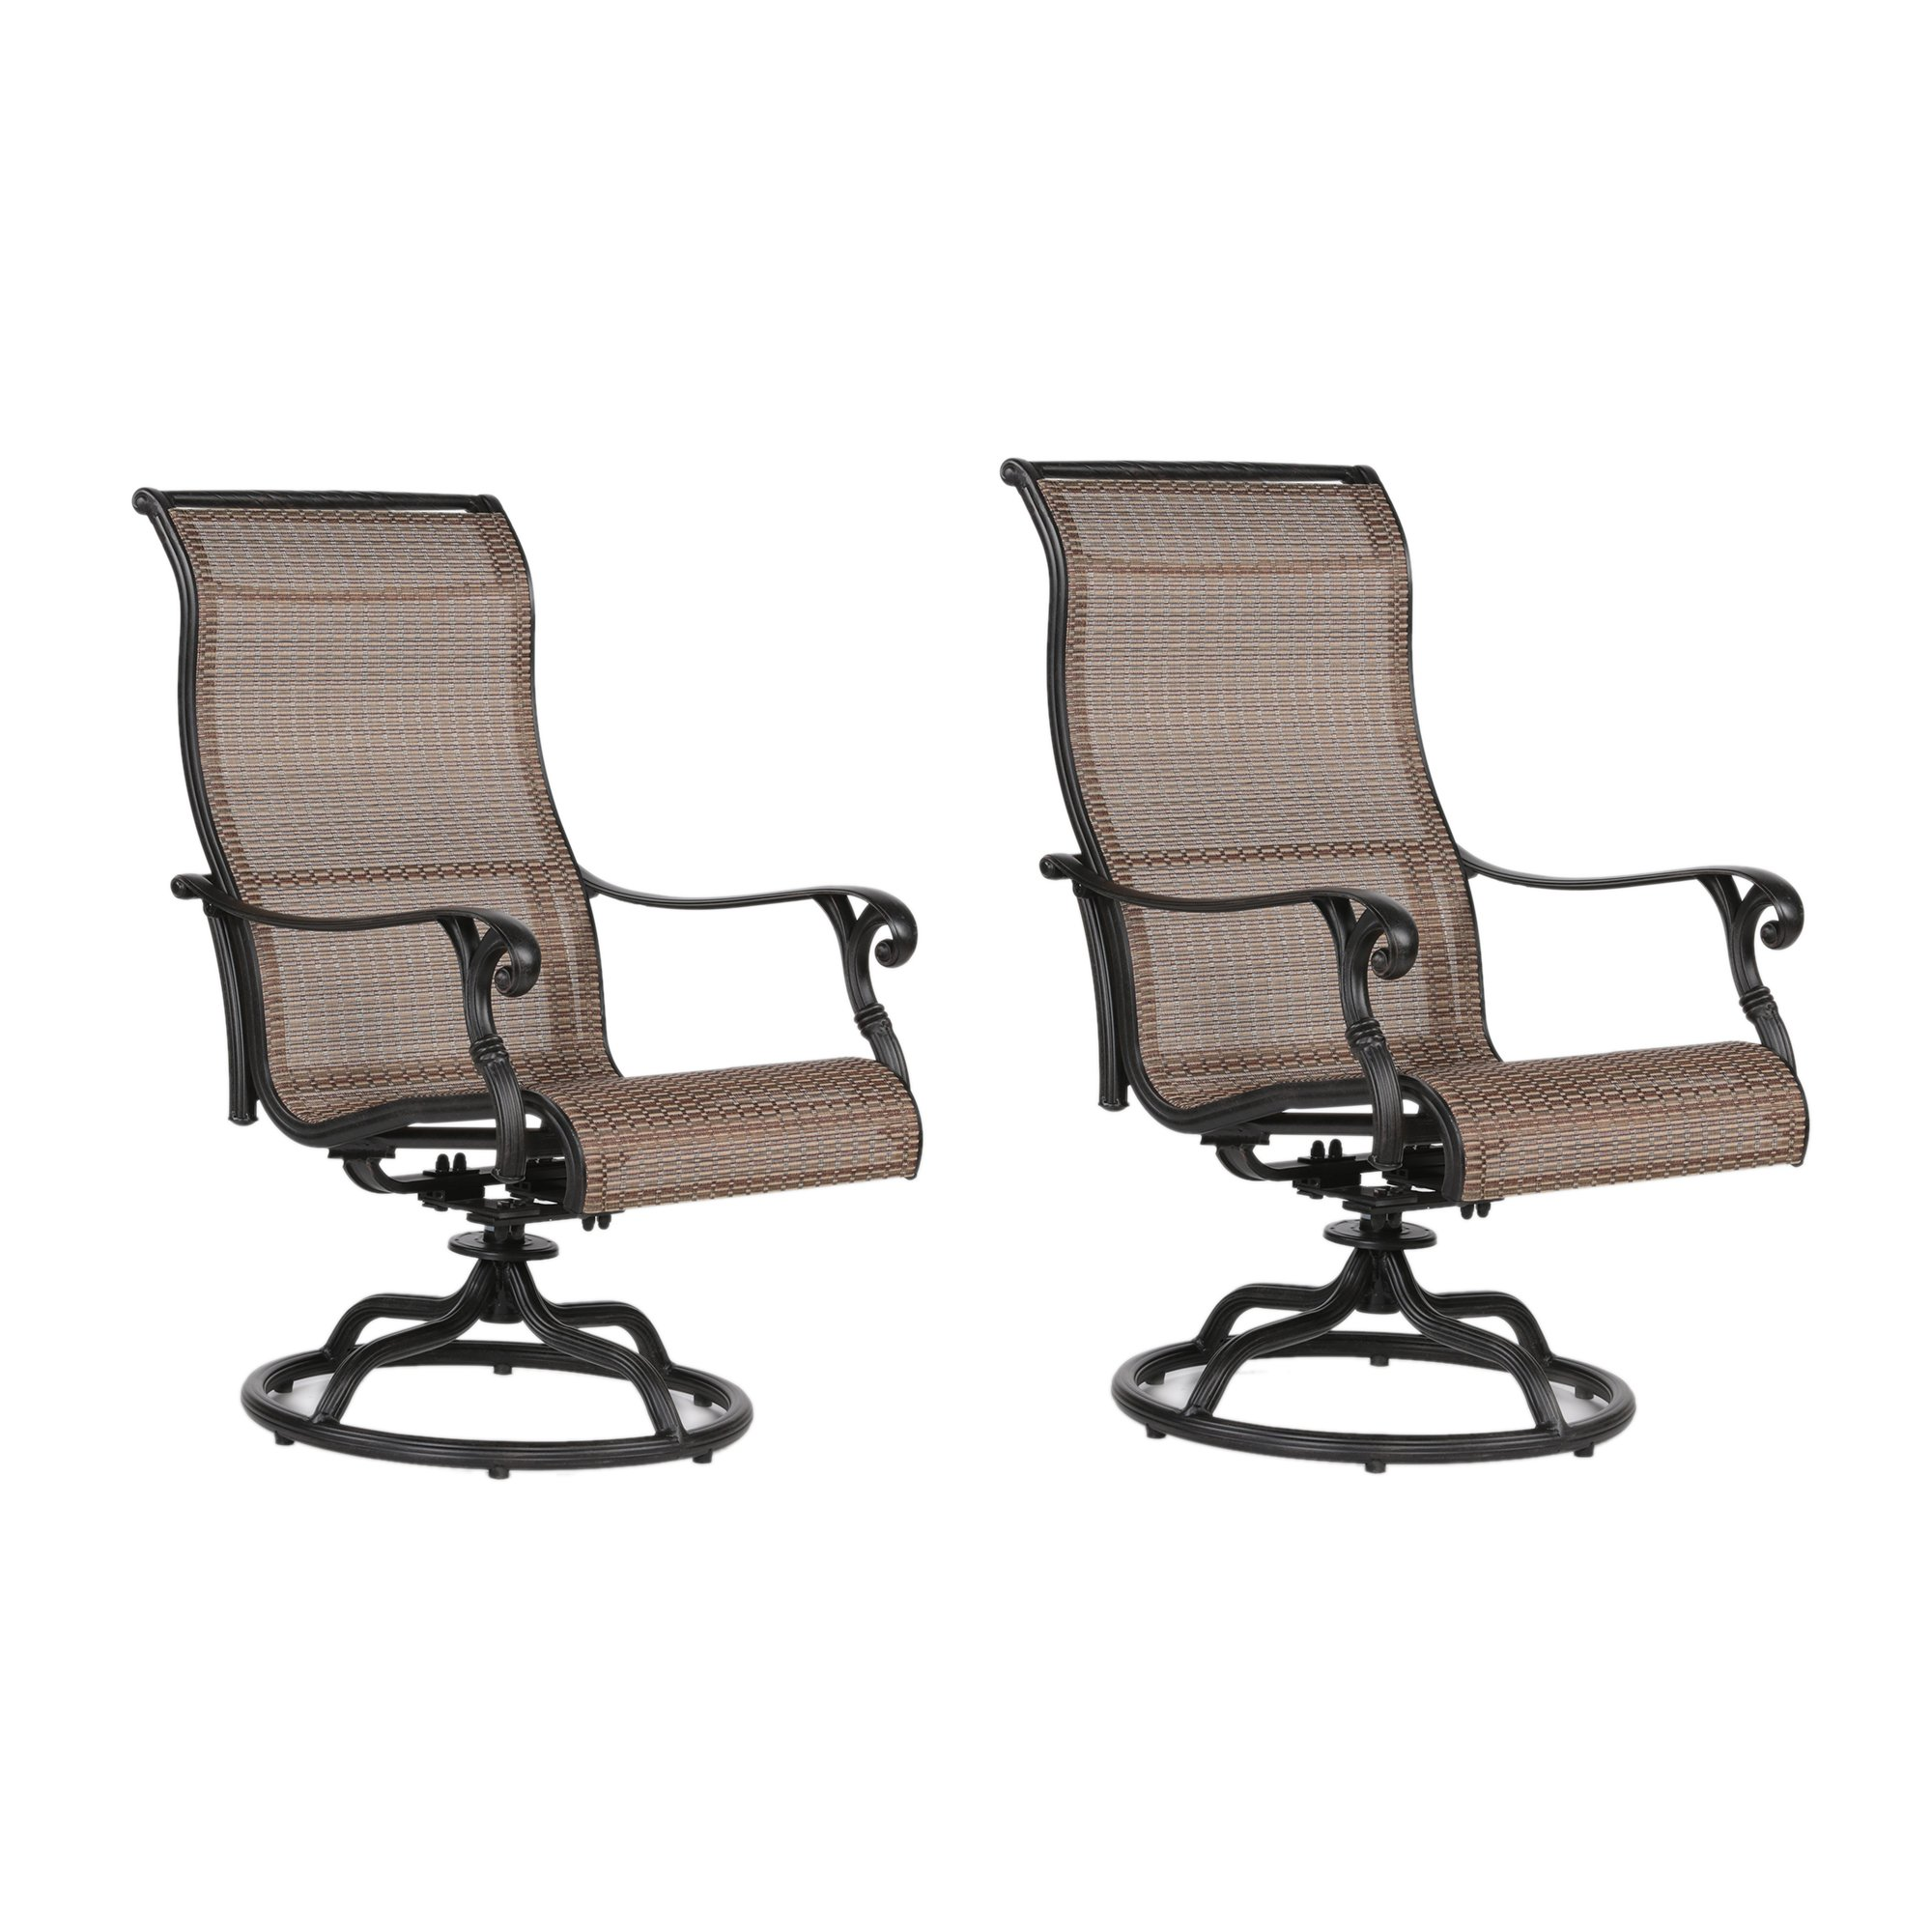 Sling Swivel Rocker Patio 2 Chairs with Aluminum Frame, All-Weather Furniture (Set of 2)